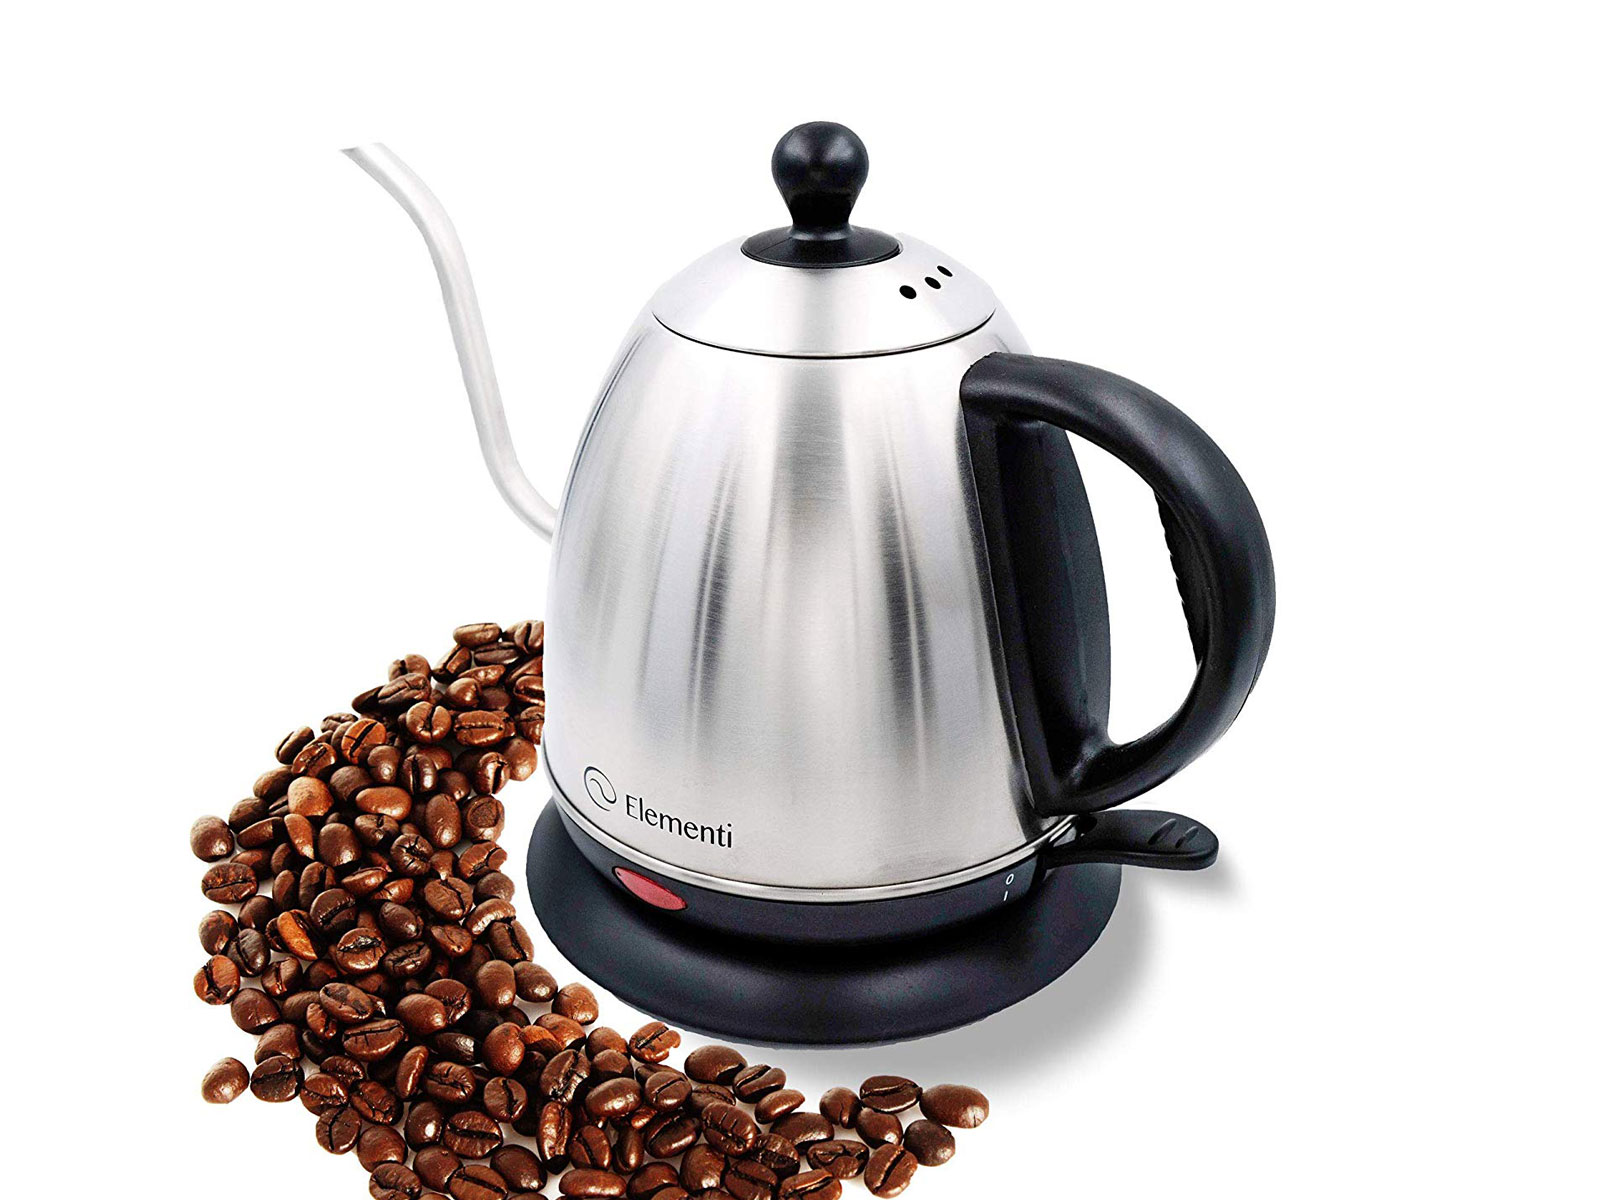 Elementi Electric Kettle